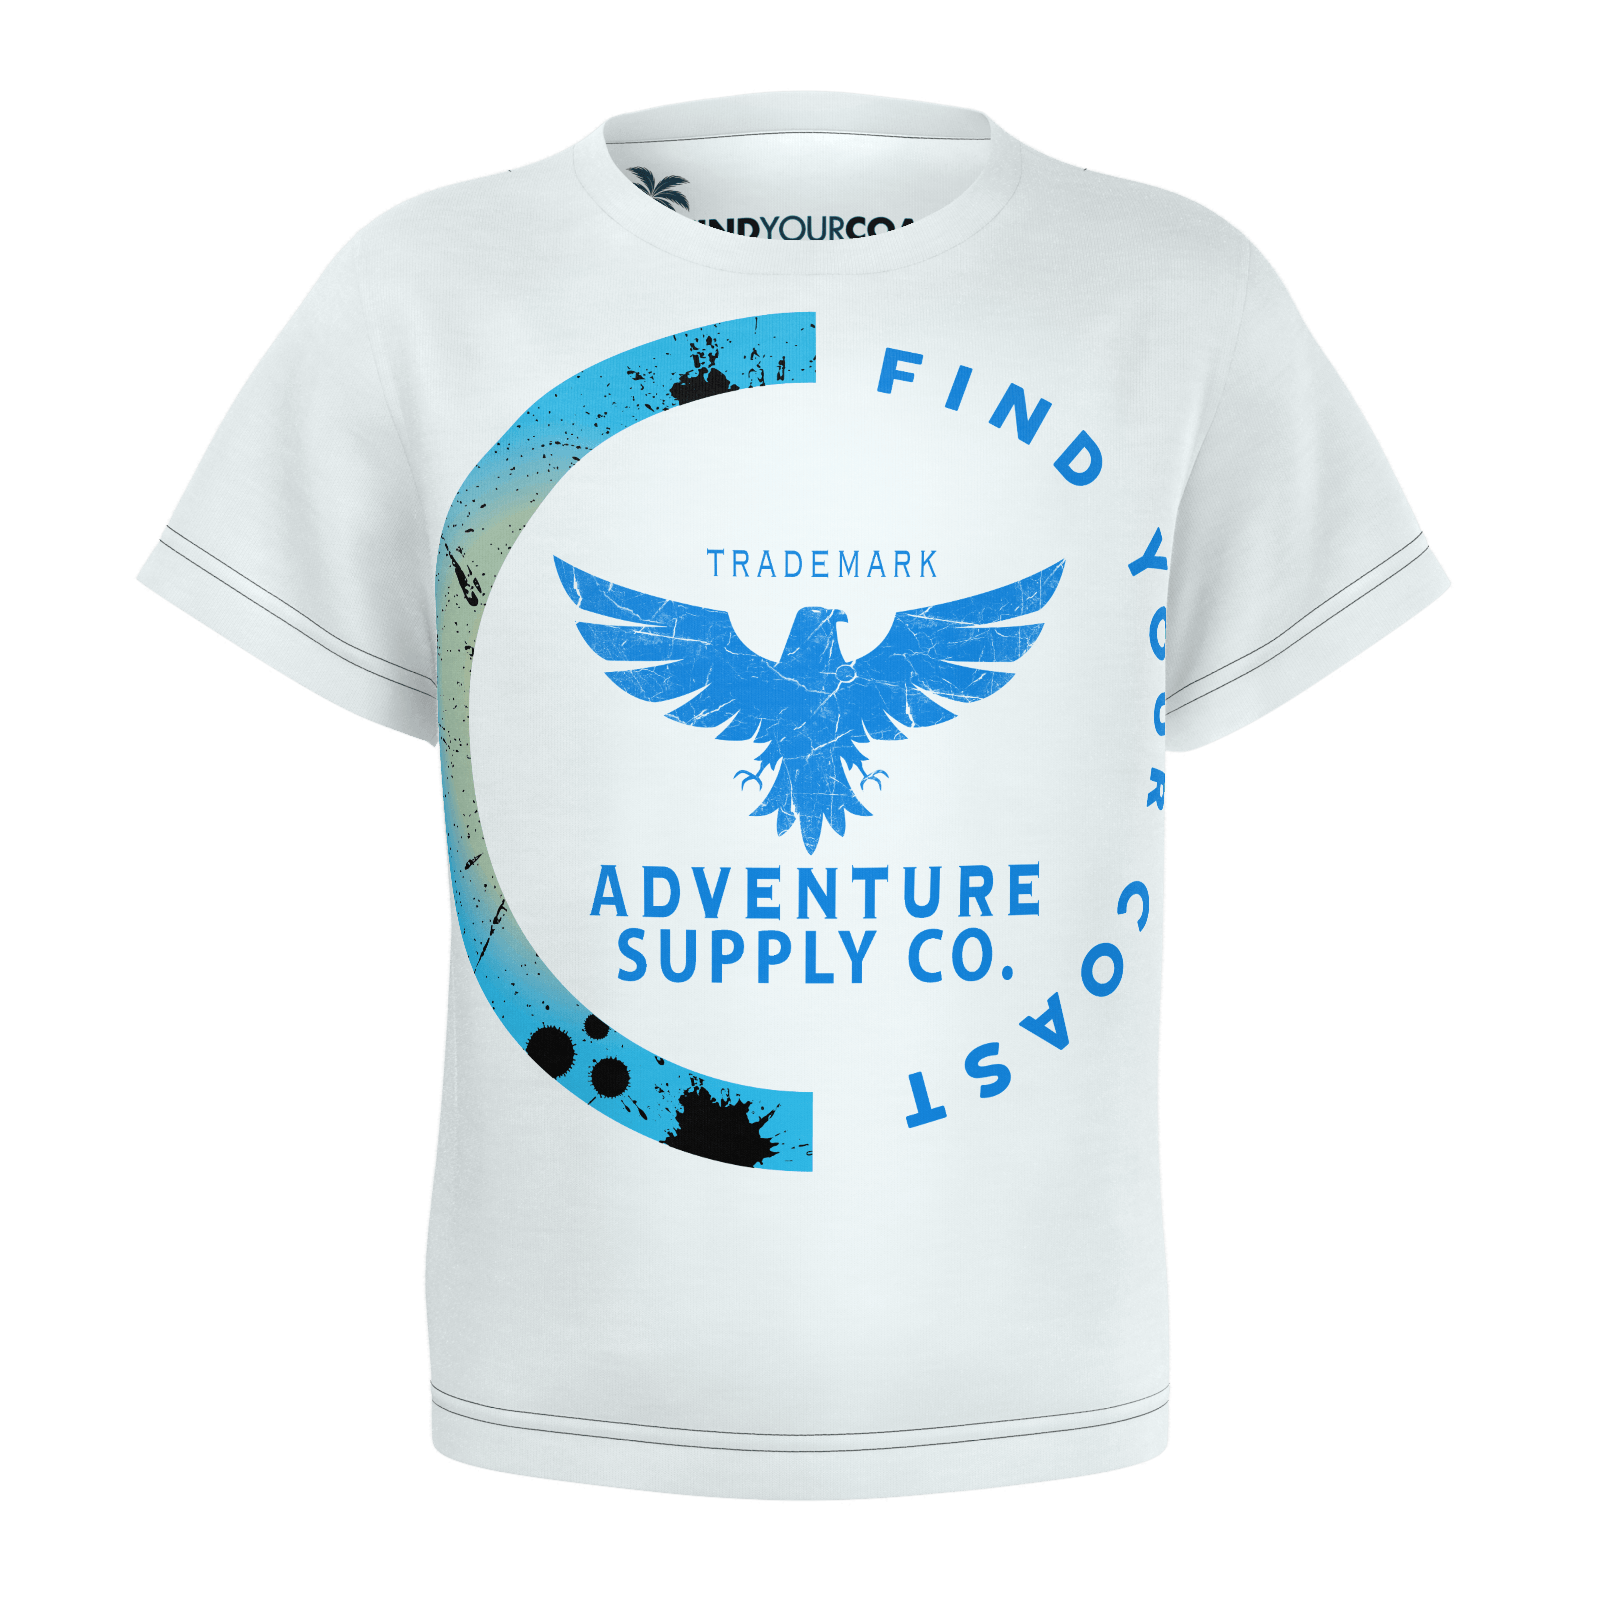 Toddler Find Your Coast Adventure Supply Co. Sustainable Short Sleeve Tee Shirt - Find Your Coast Supply Co.